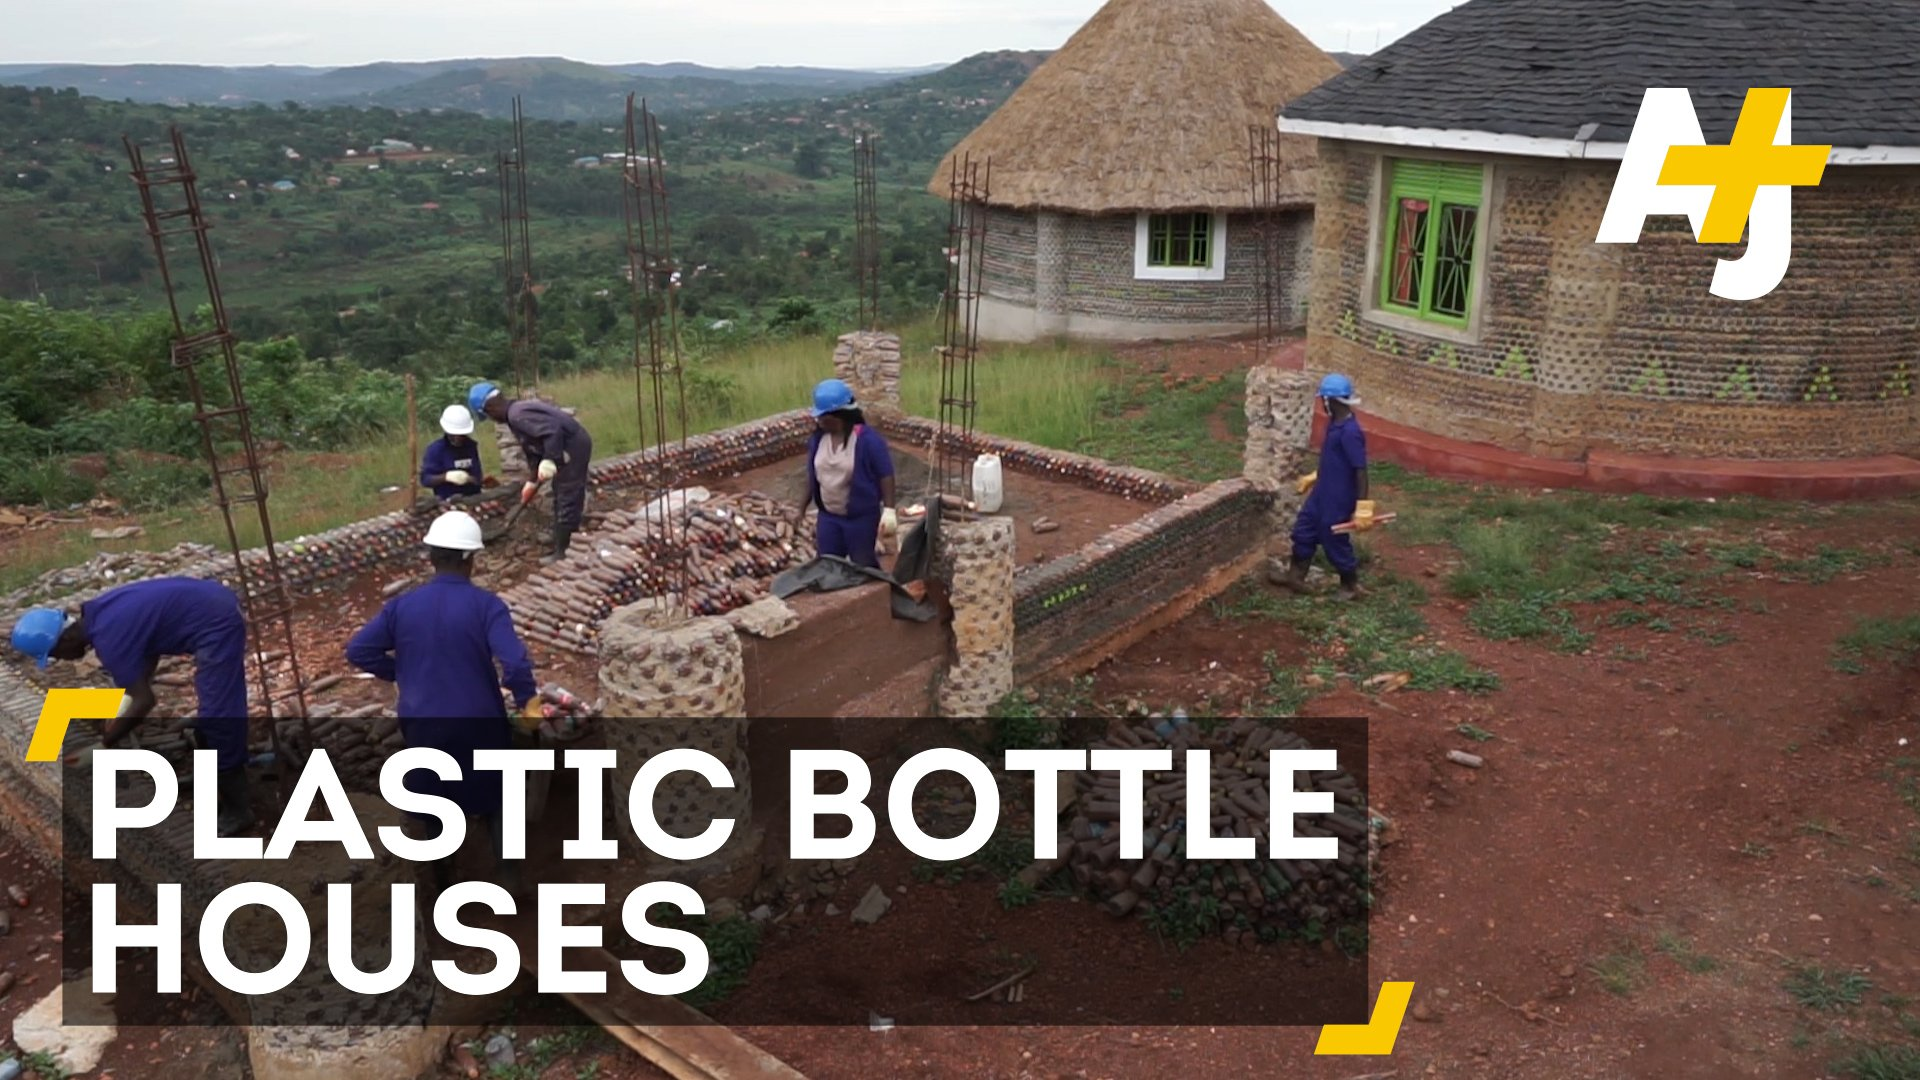 RT @ajplus: These houses are made from plastic bottles. https://t.co/GnaluJSN3j